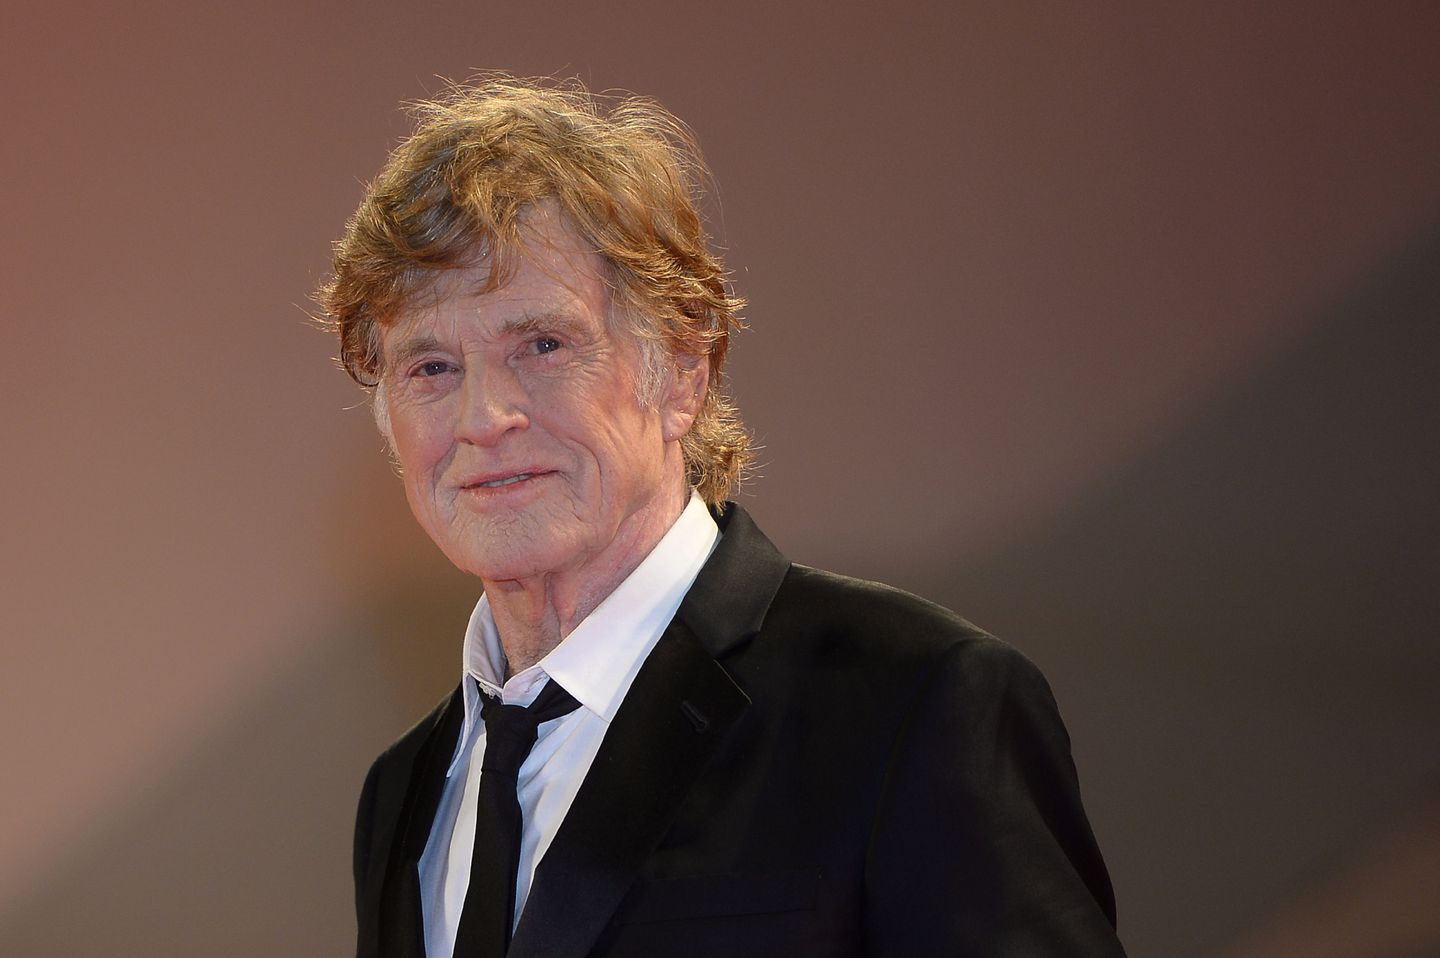 Robert Redford Is Retiring From Acting Says Upcoming Role